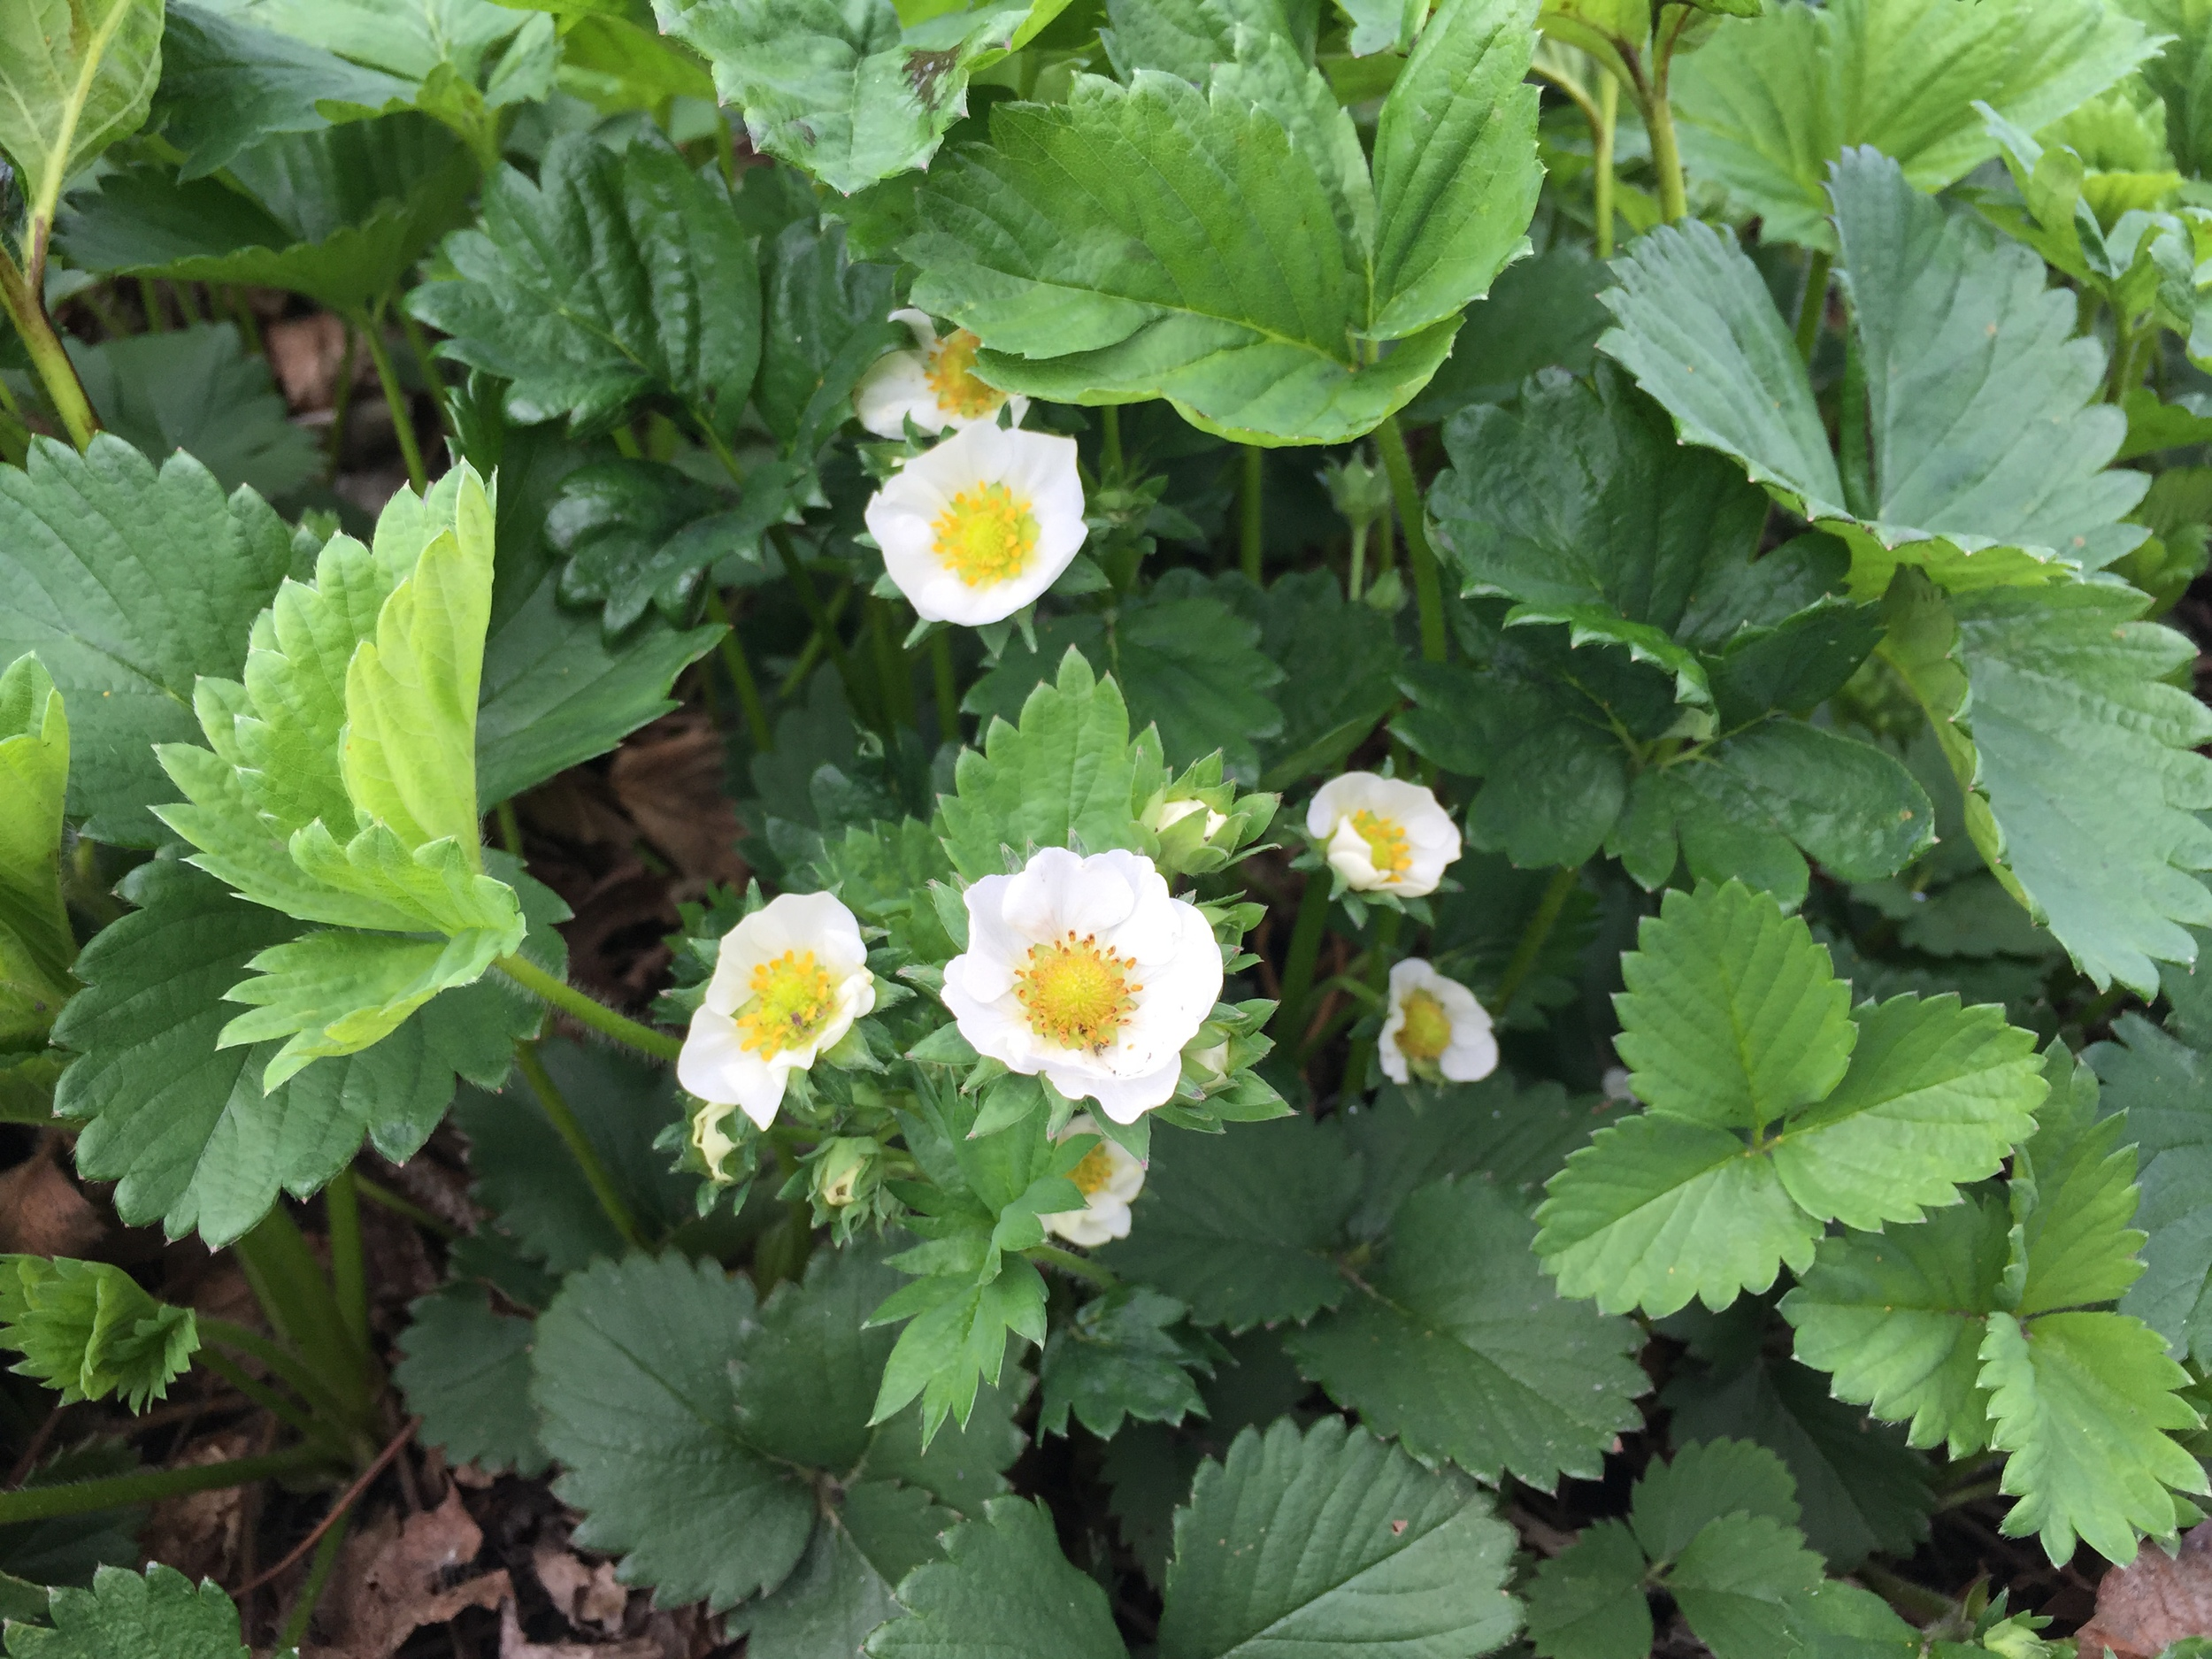 Strawberries are blooming!